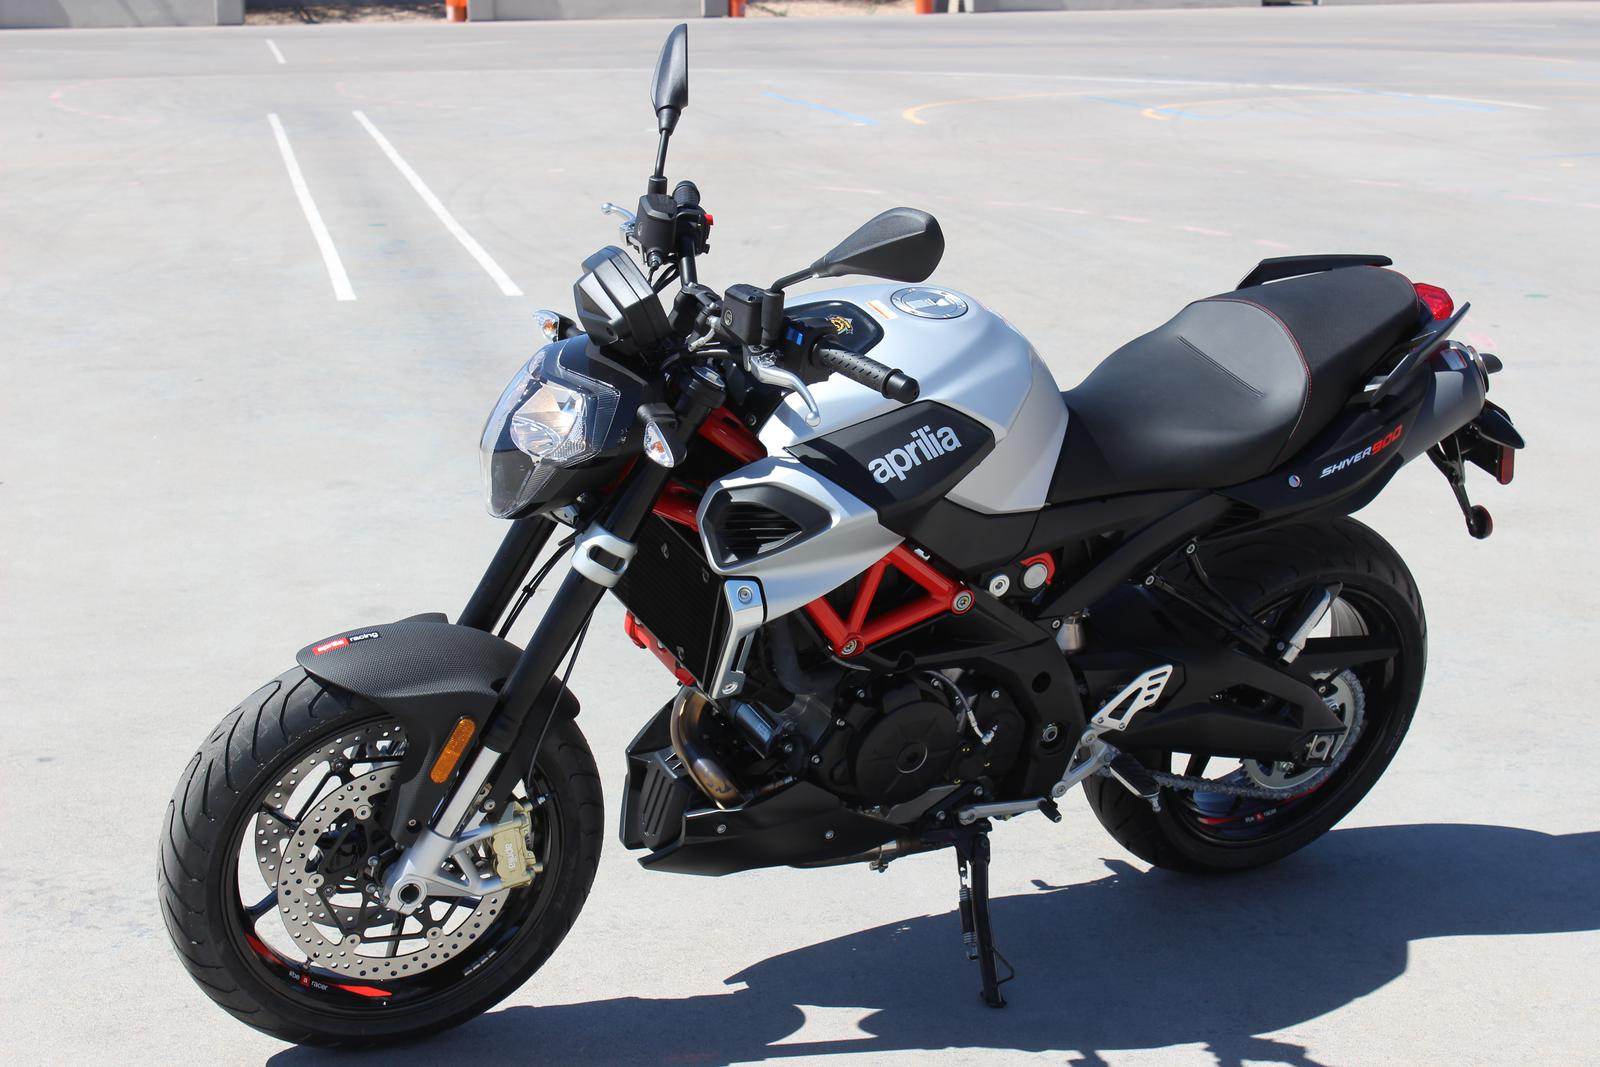 2018 Aprilia Shiver 900 for sale in Scottsdale, AZ. GO AZ ...